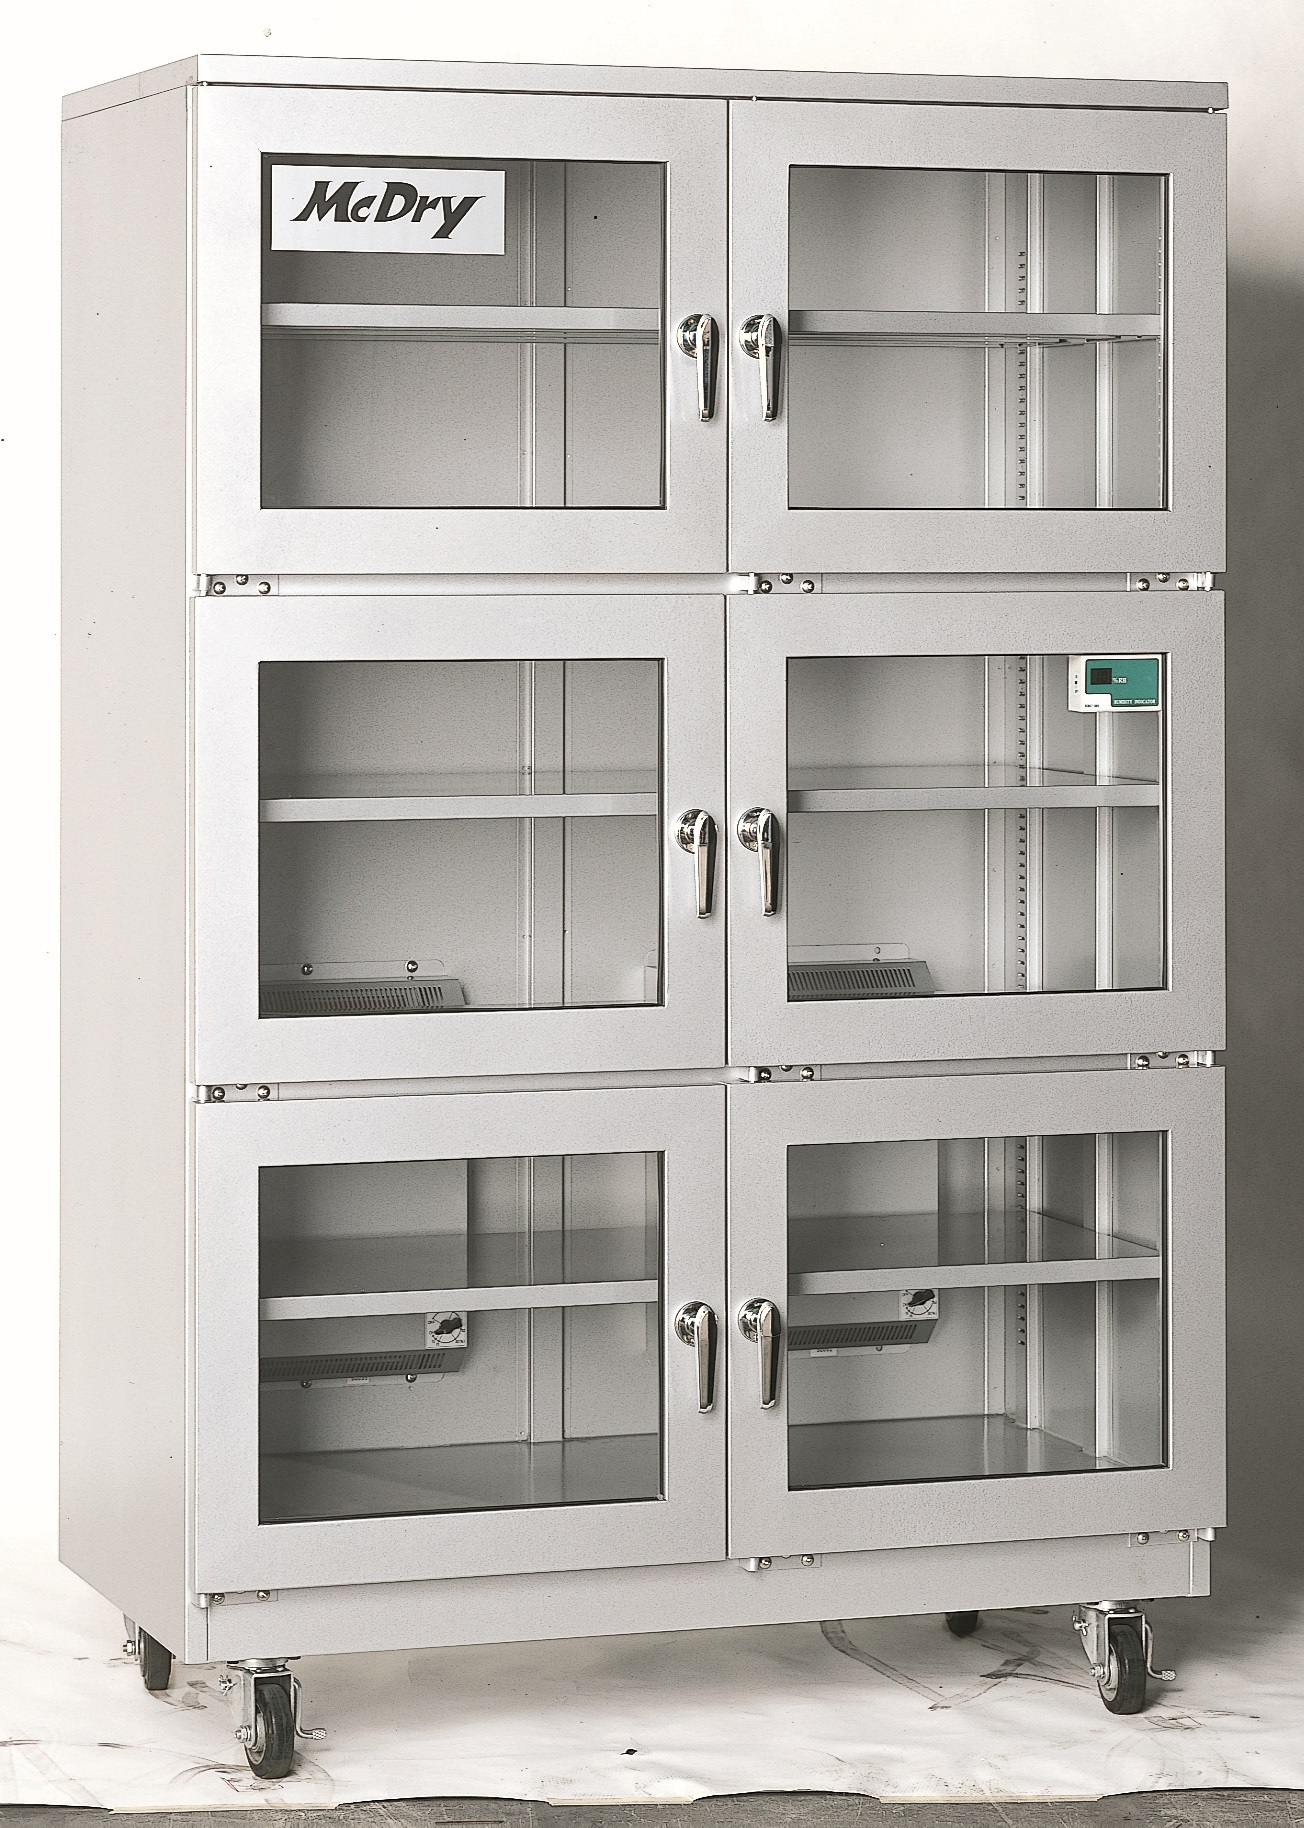 Seika Announces Mcdry Cabinets For Low Humidity Storage Of